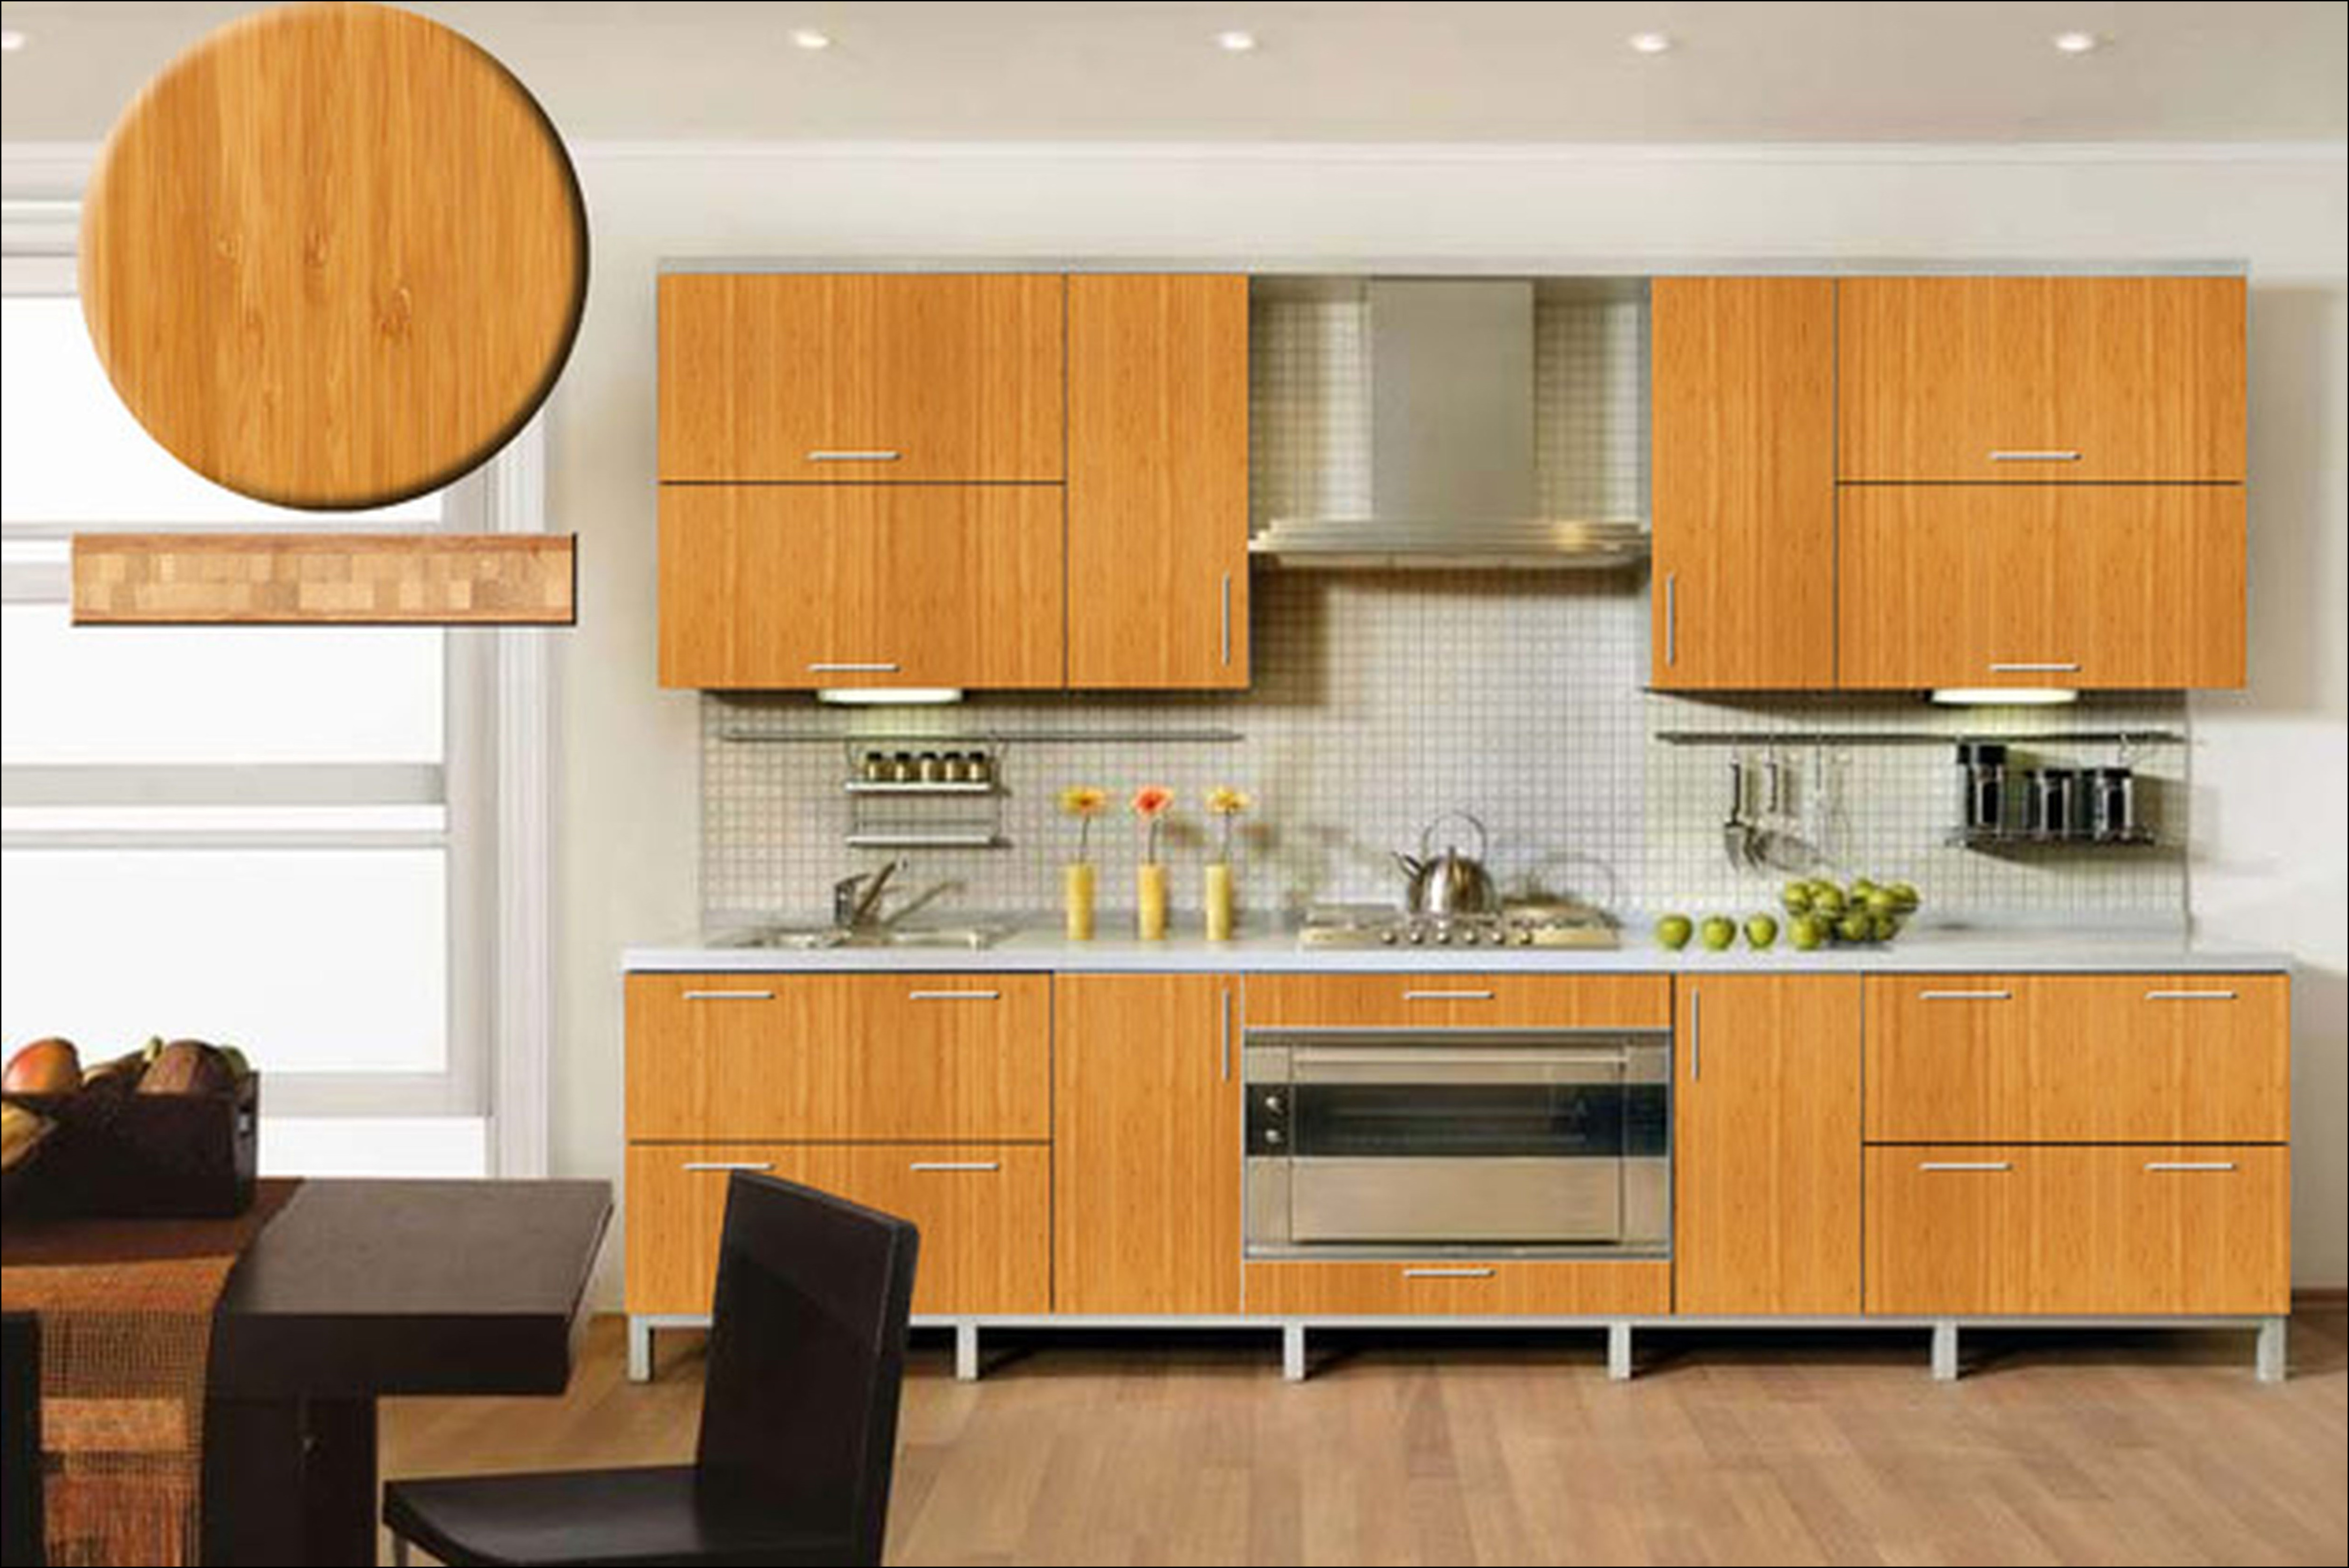 Kitchen Cabinets Price In Malaysia Ikea Kitchen Cabinet Price Malaysia Do Cabinets Ever Go On